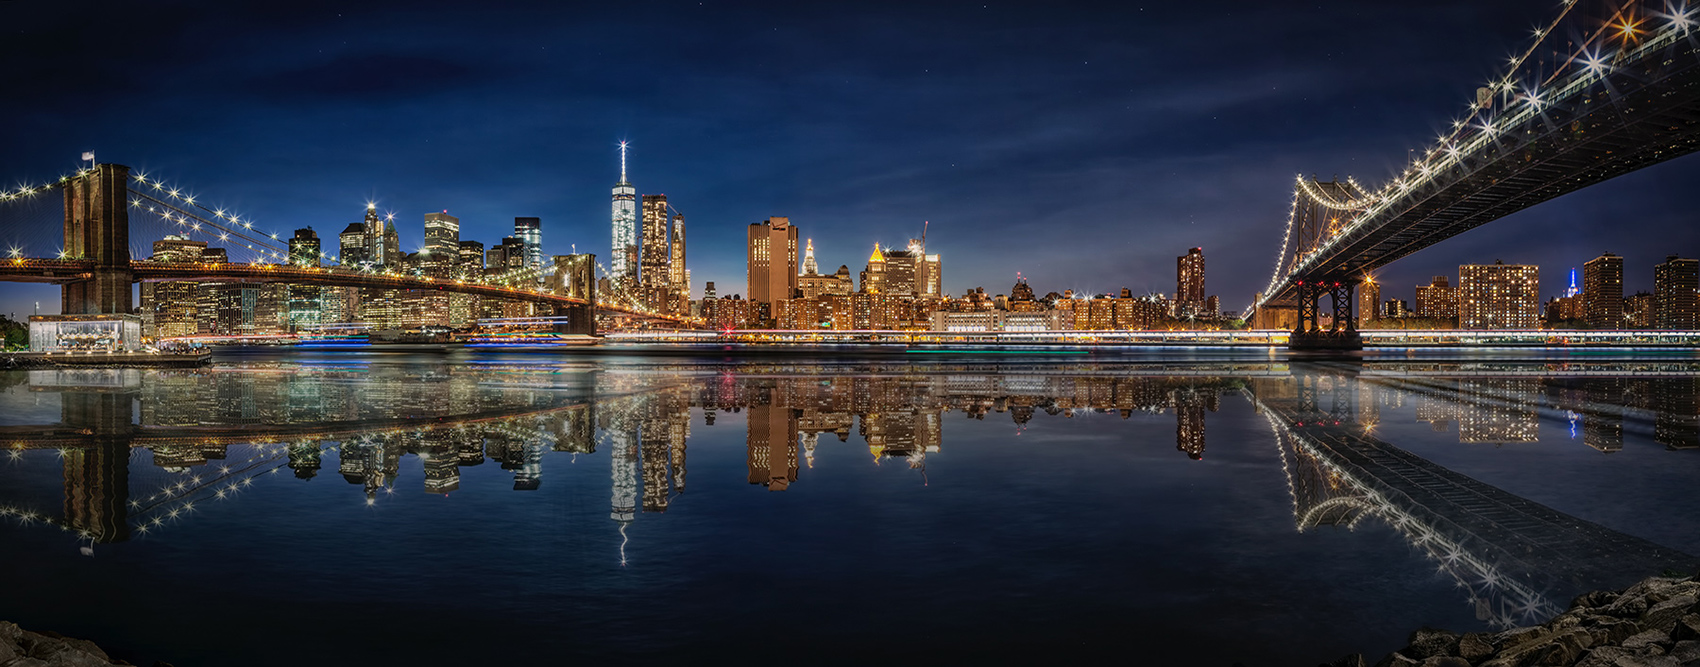 Panorama of New York City from Brooklyn after dark